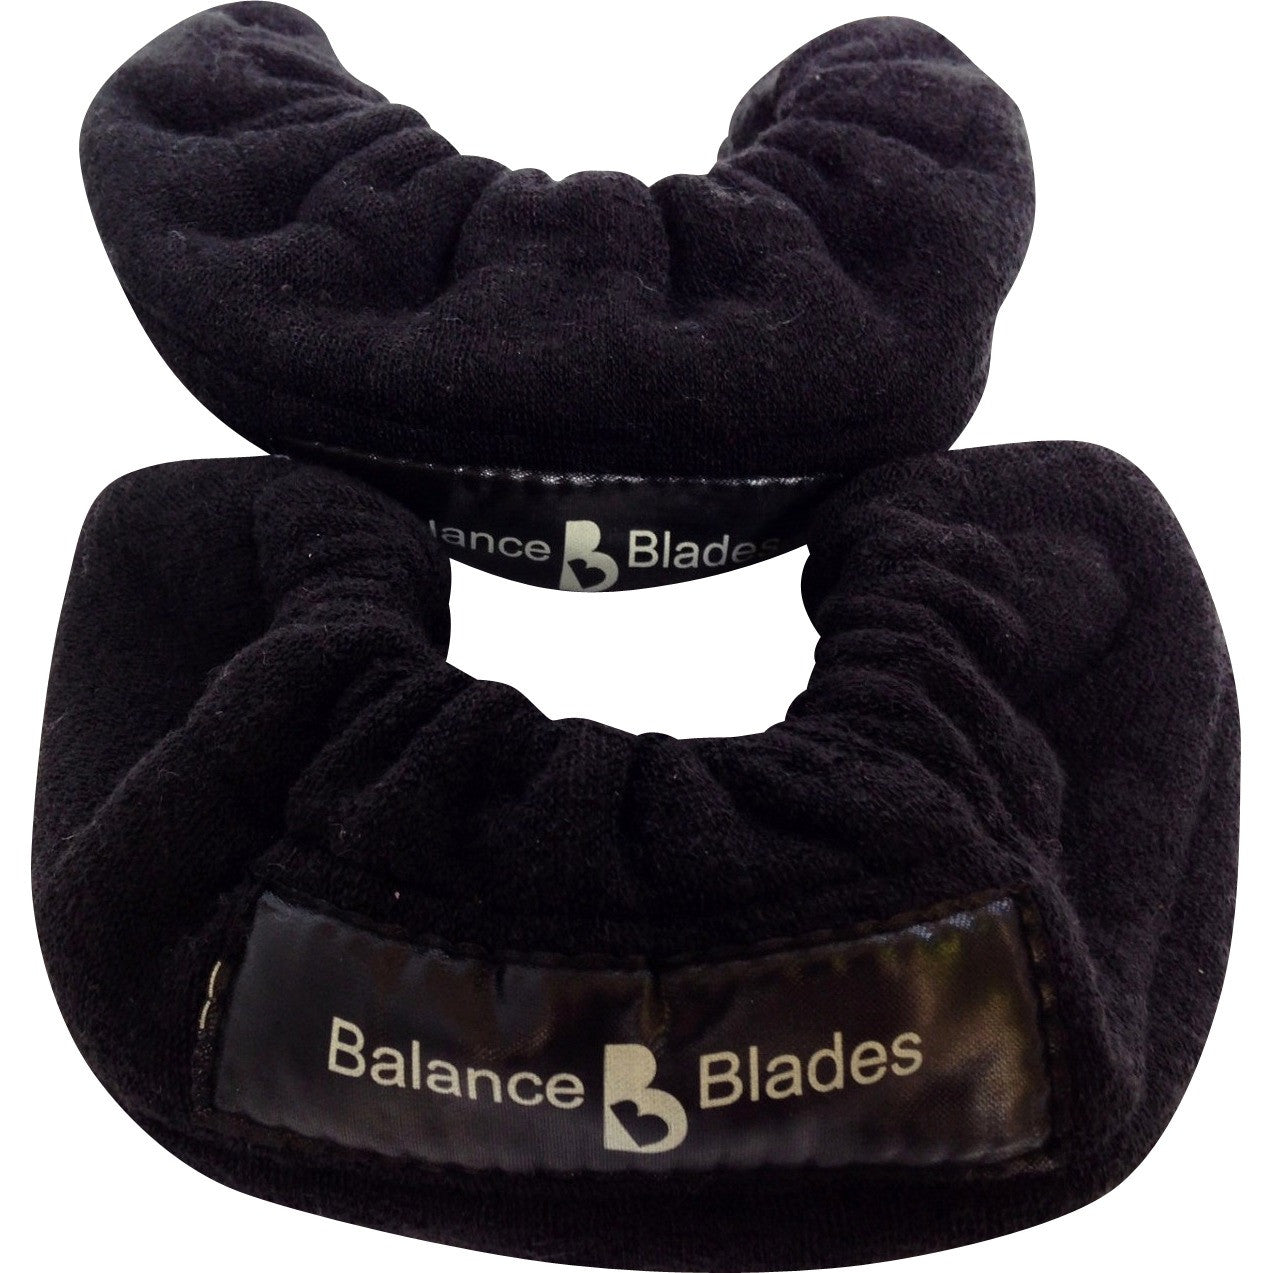 Skate Covers - Balance Blades Inc.